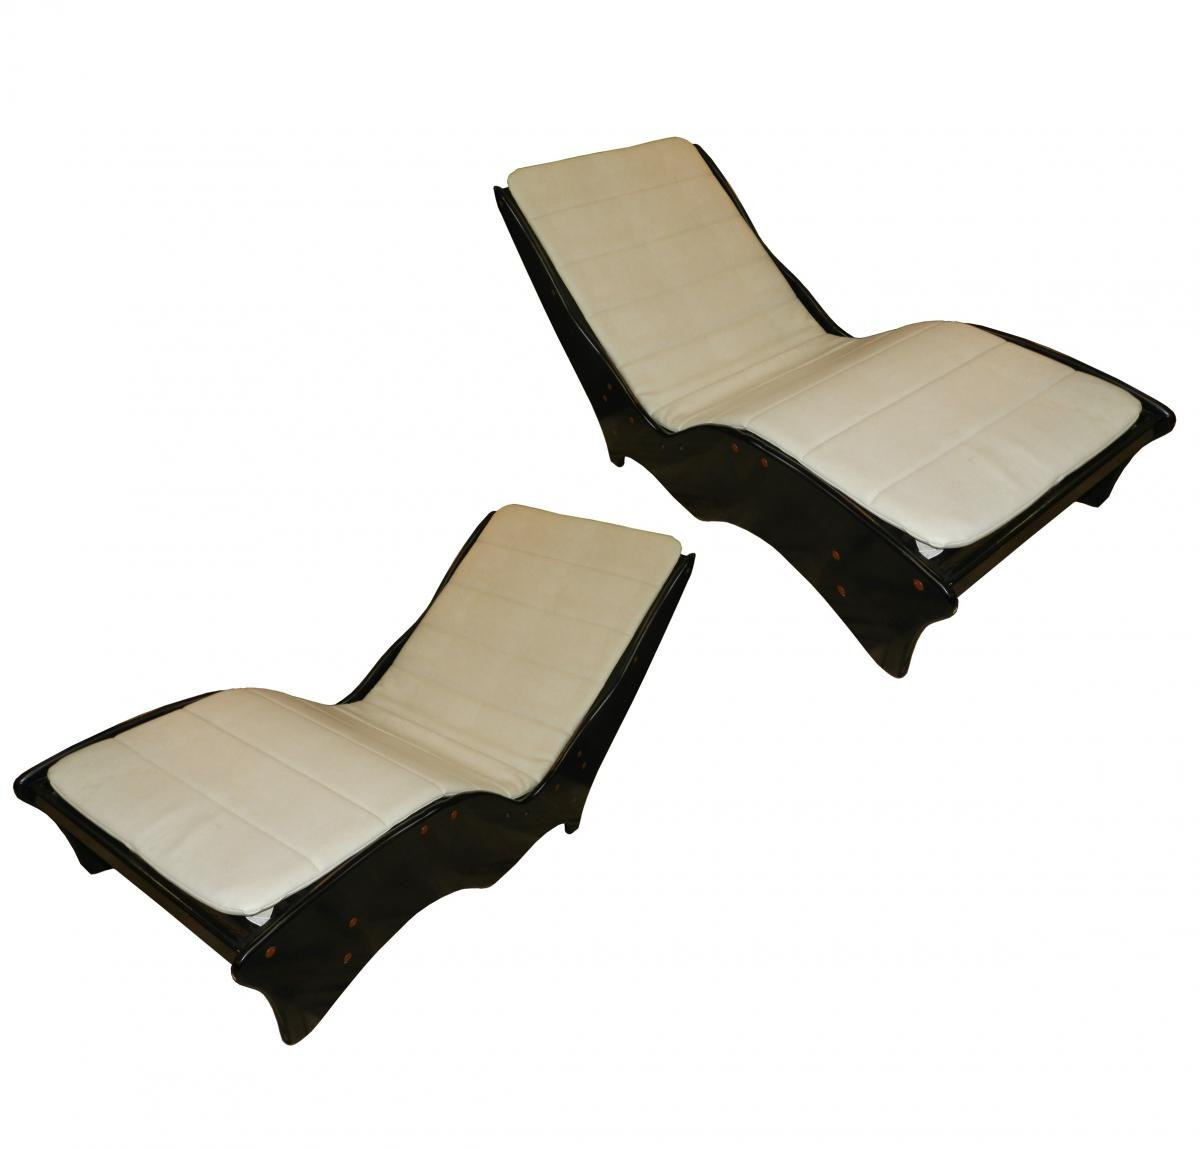 vintage chaise longues 1970s set of 2 for sale at pamono. Black Bedroom Furniture Sets. Home Design Ideas